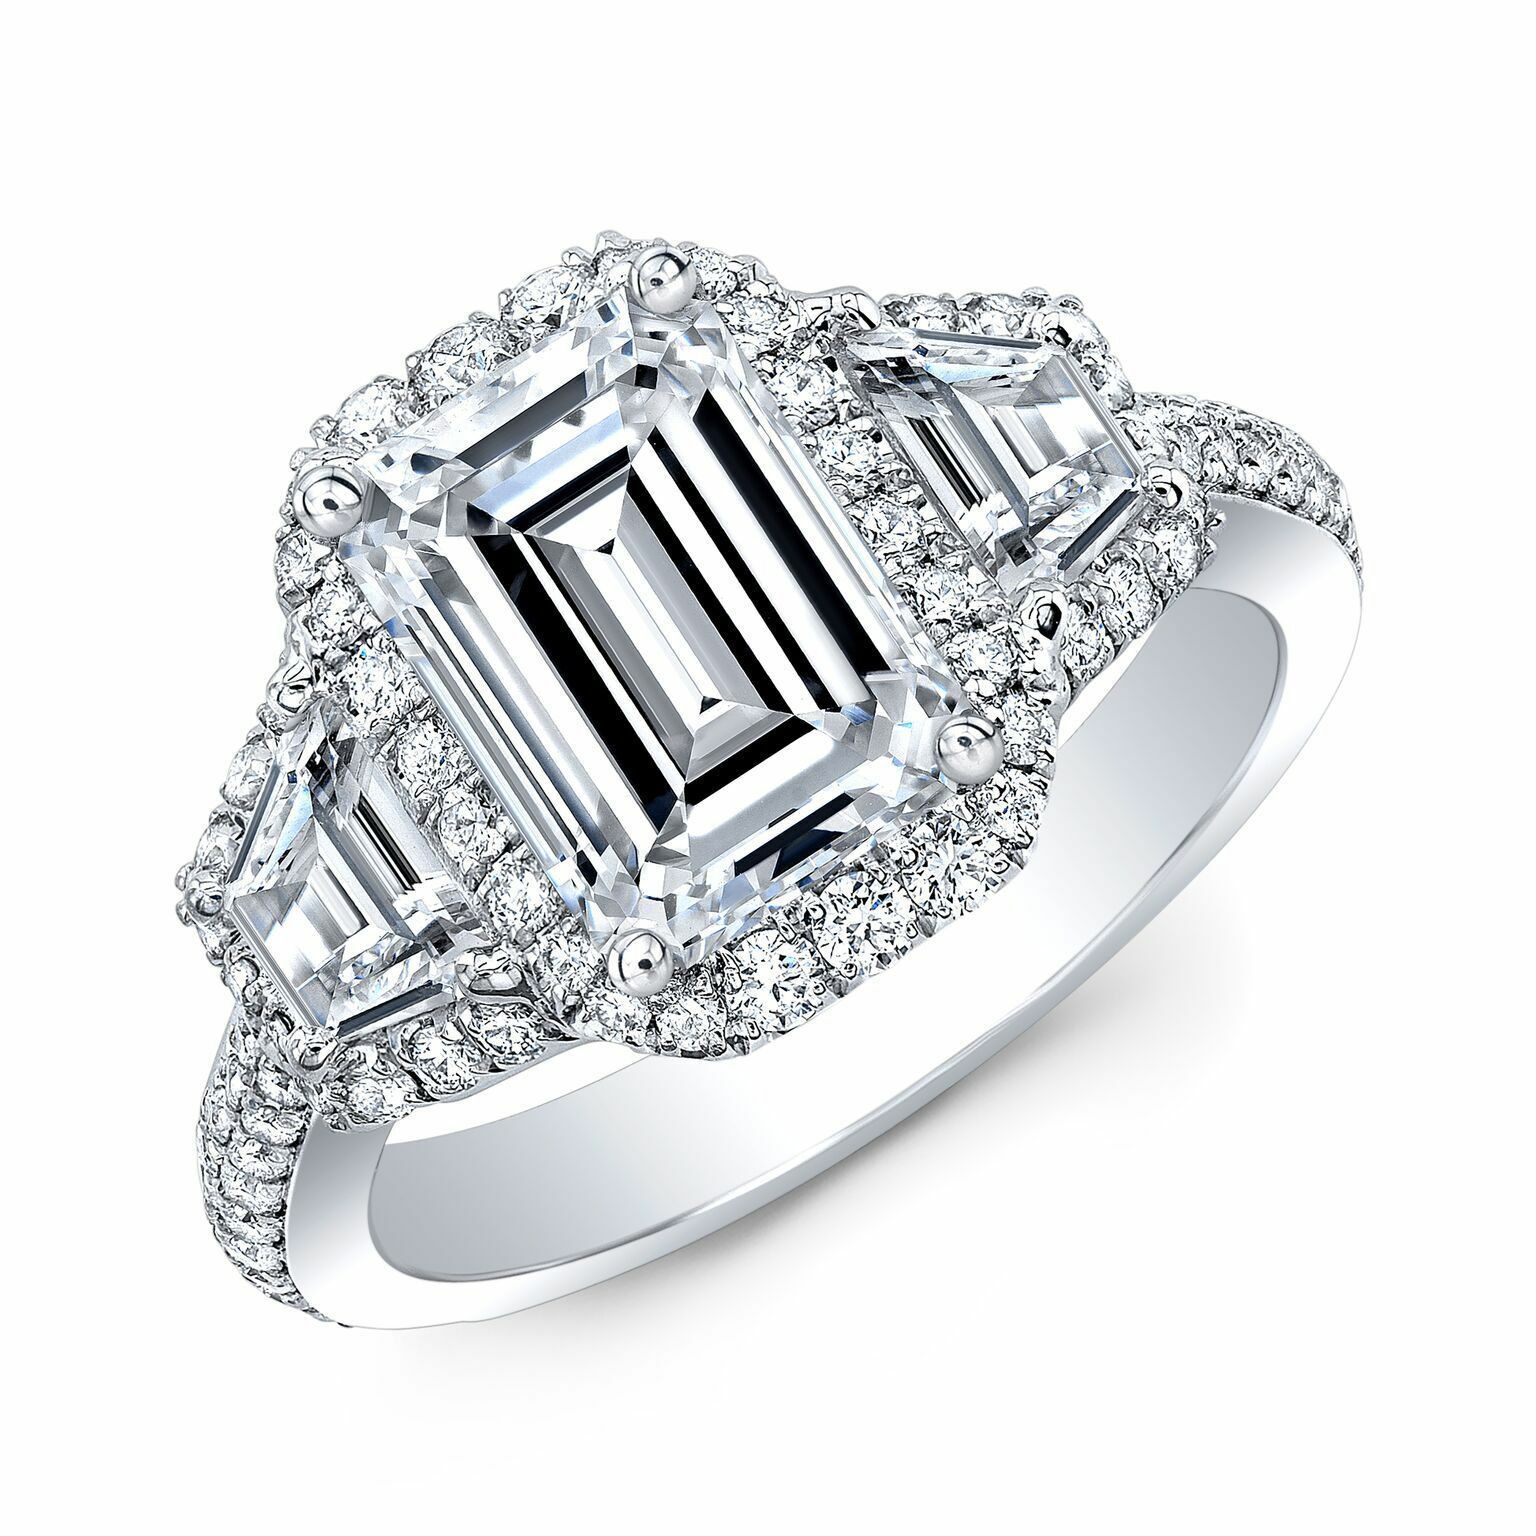 2.20ctwNatural Emerald Cut 3-Stone Halo 2 Row Shank Diamond Engagement Ring GIA 1